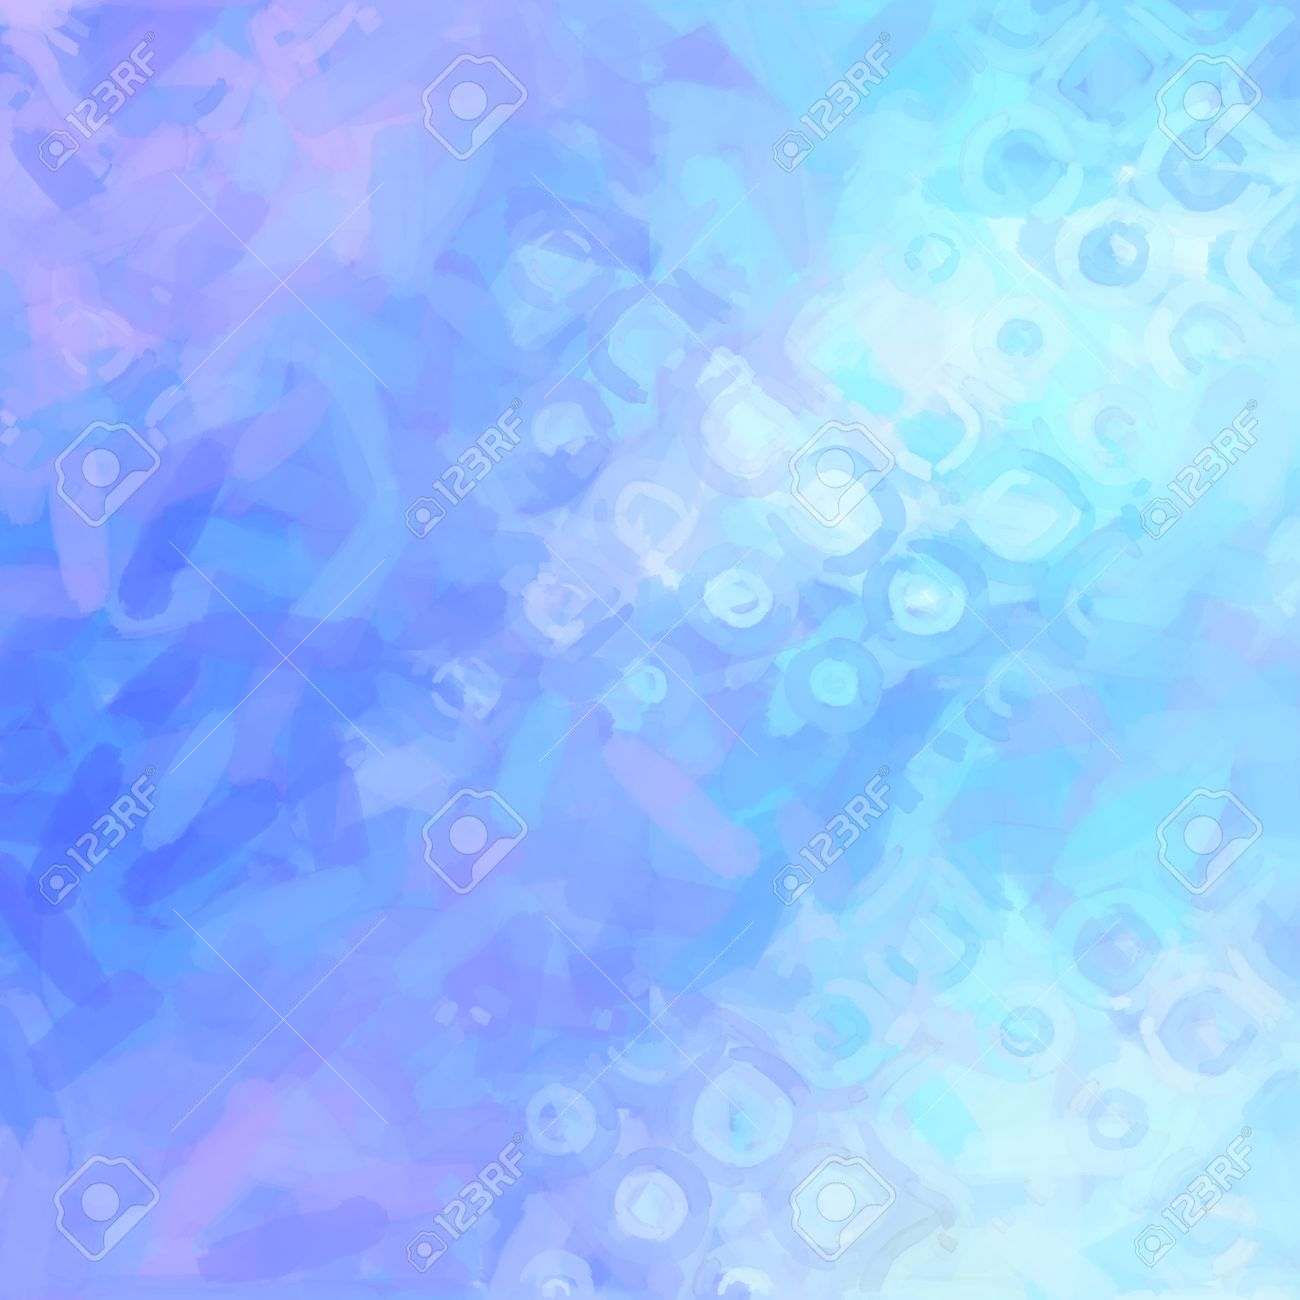 Colorful watercolor background. Abstract watercolour background paper design of bright color splashes modern art painted canvas background texture atmosphere art. Stock Photo - 18588413